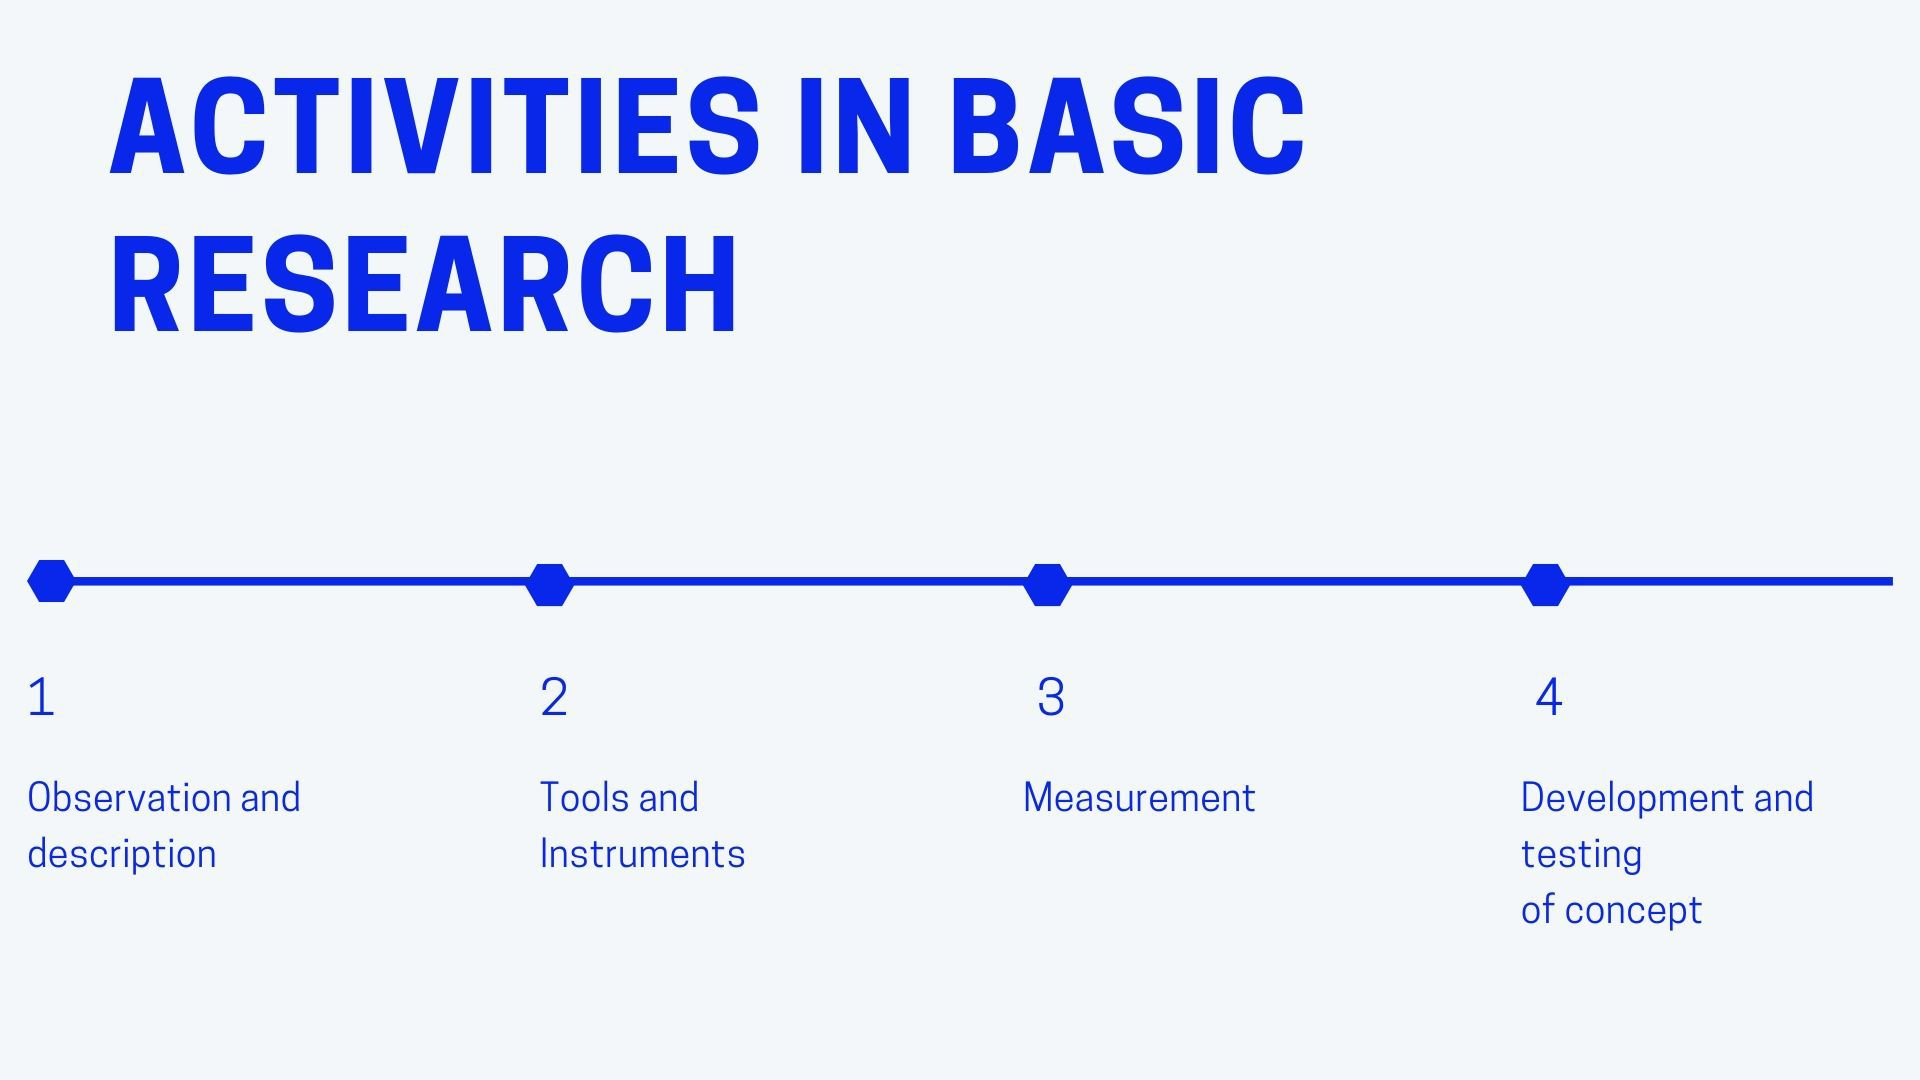 Activities in Basic research